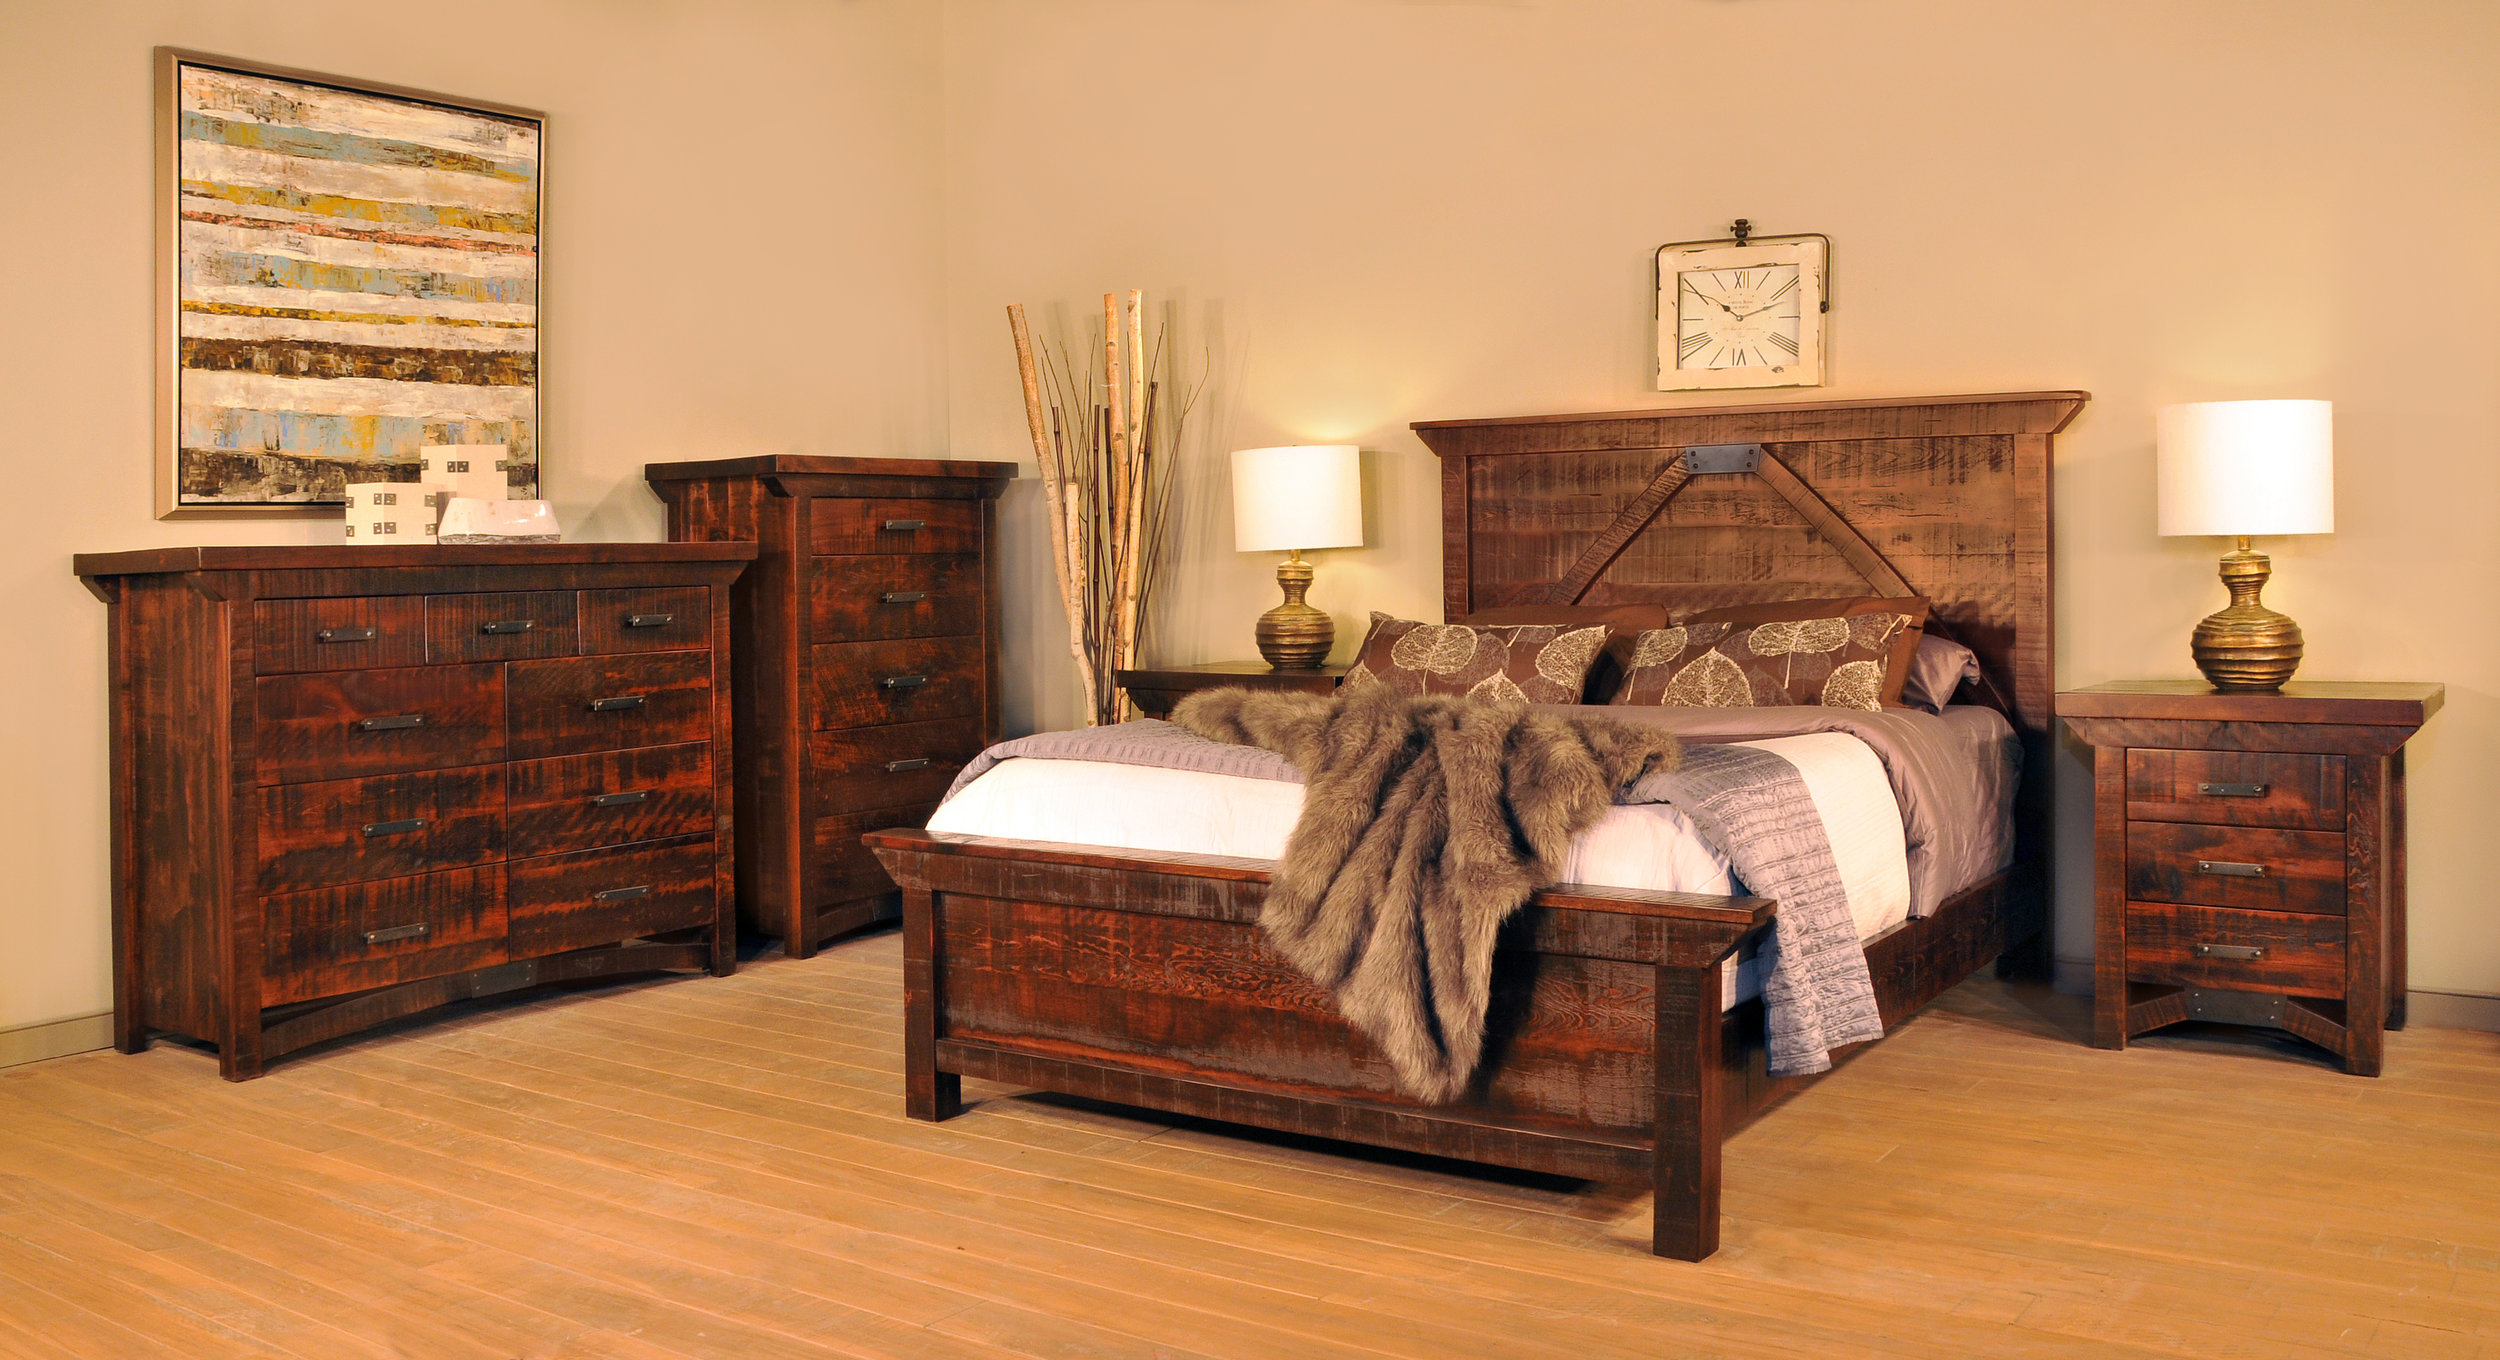 Rustic Carlisle bedroom set for sale in PA